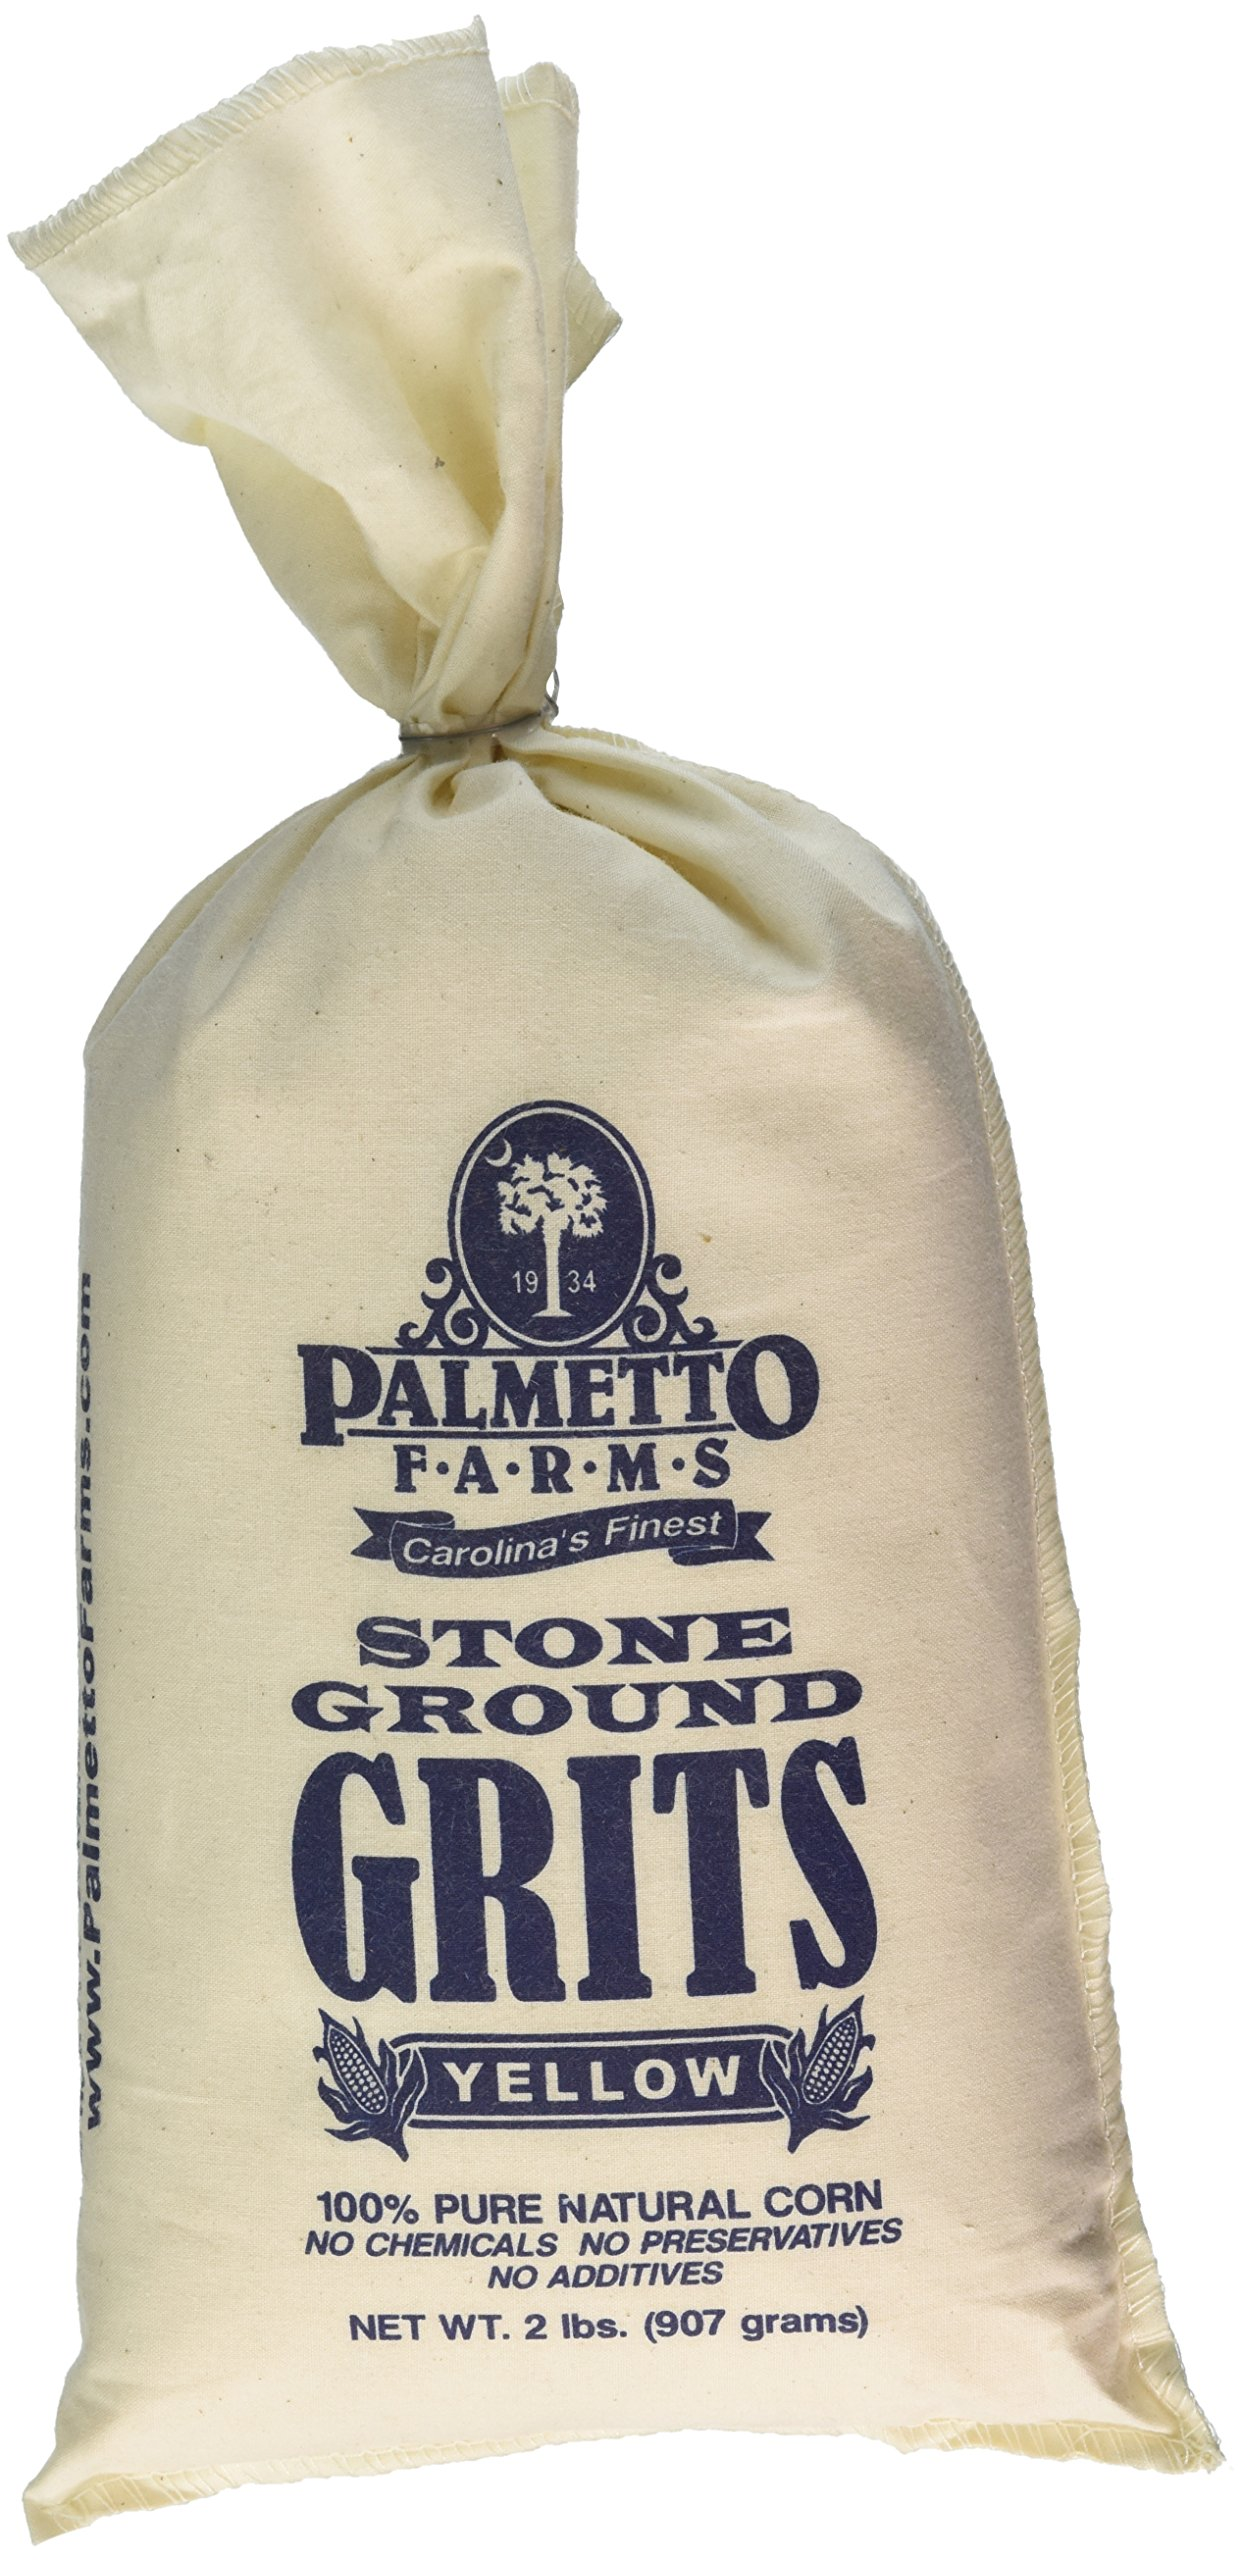 Palmetto Farms Yellow Stone Ground Grits 2 LB - Non-GMO - Just All Natural Corn, No Additives - Naturally Gluten Free, Produced in a Wheat free facility - Grinding Grits Since 1934